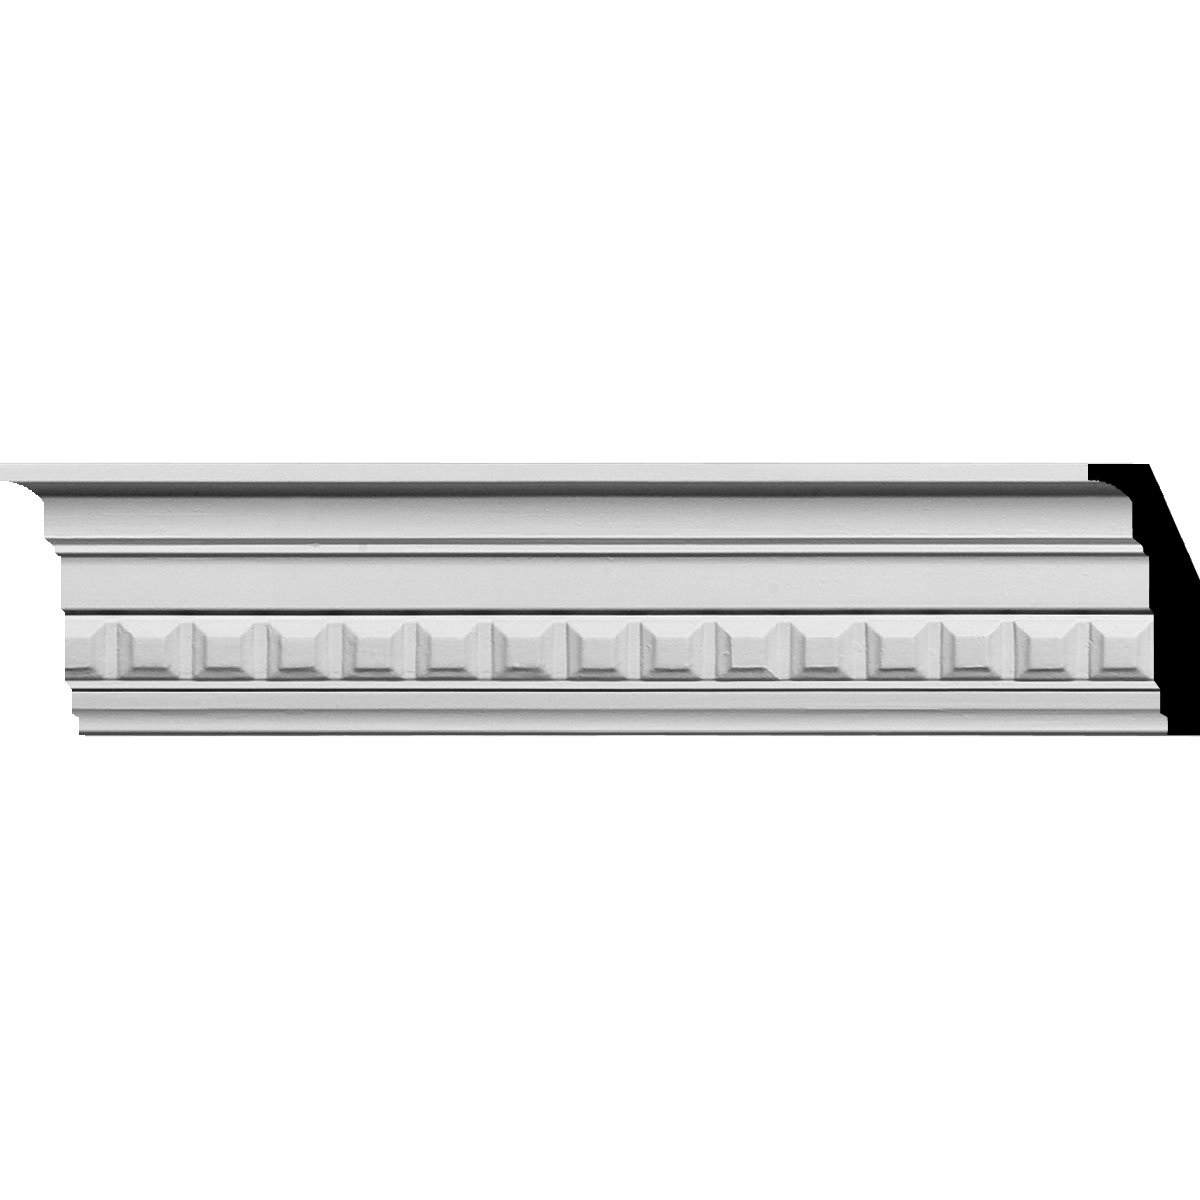 3 1/2''H x 1 7/8''P x 4''F x 94 1/2''L Sequential Crown Moulding (12-Pack)